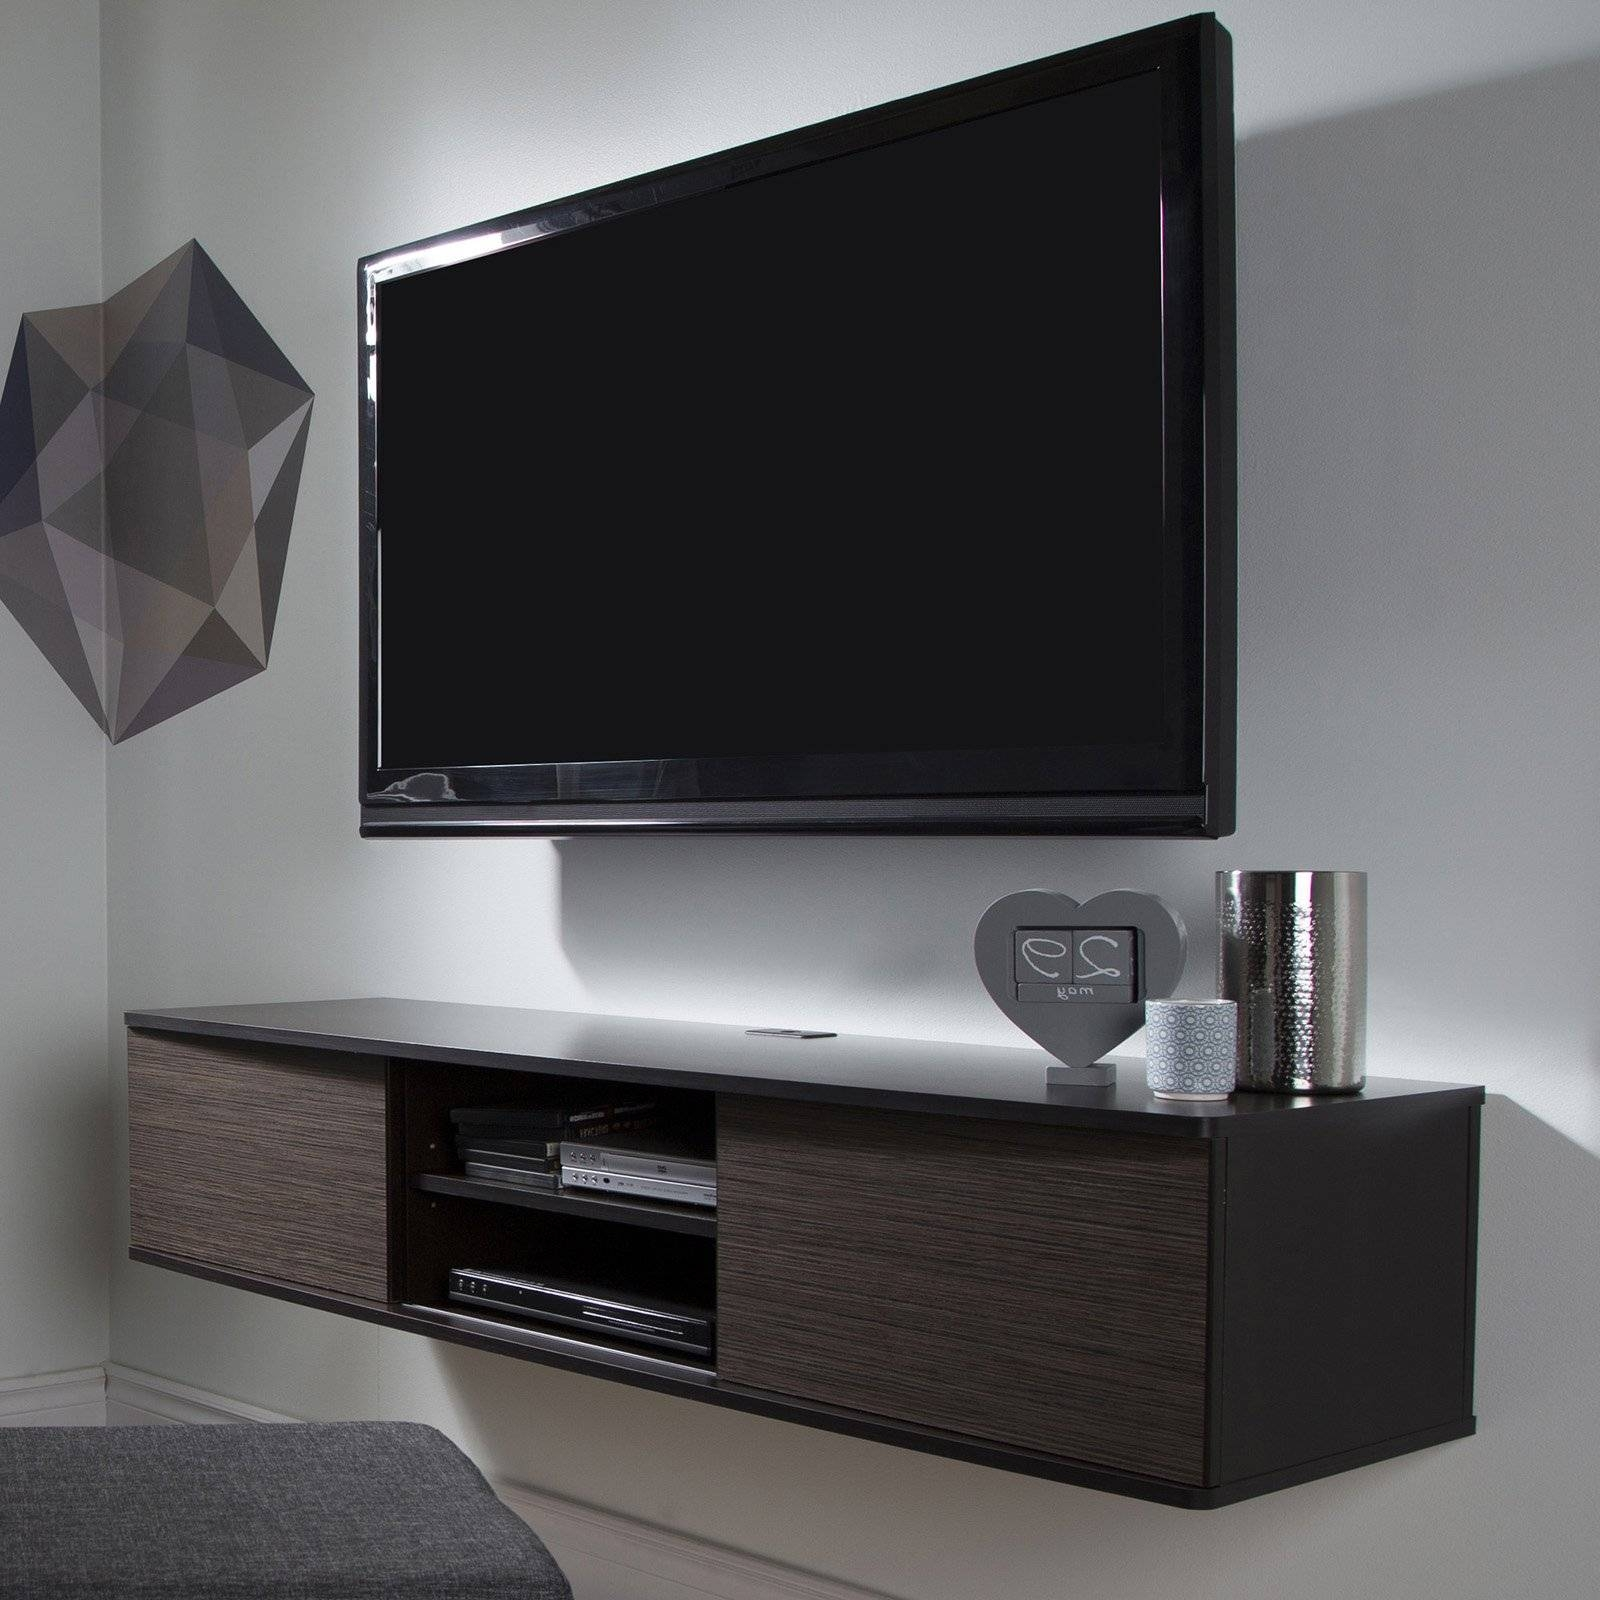 Contemporary & Modern Tv Stands | Hayneedle With Regard To Modern Contemporary Tv Stands (View 6 of 15)